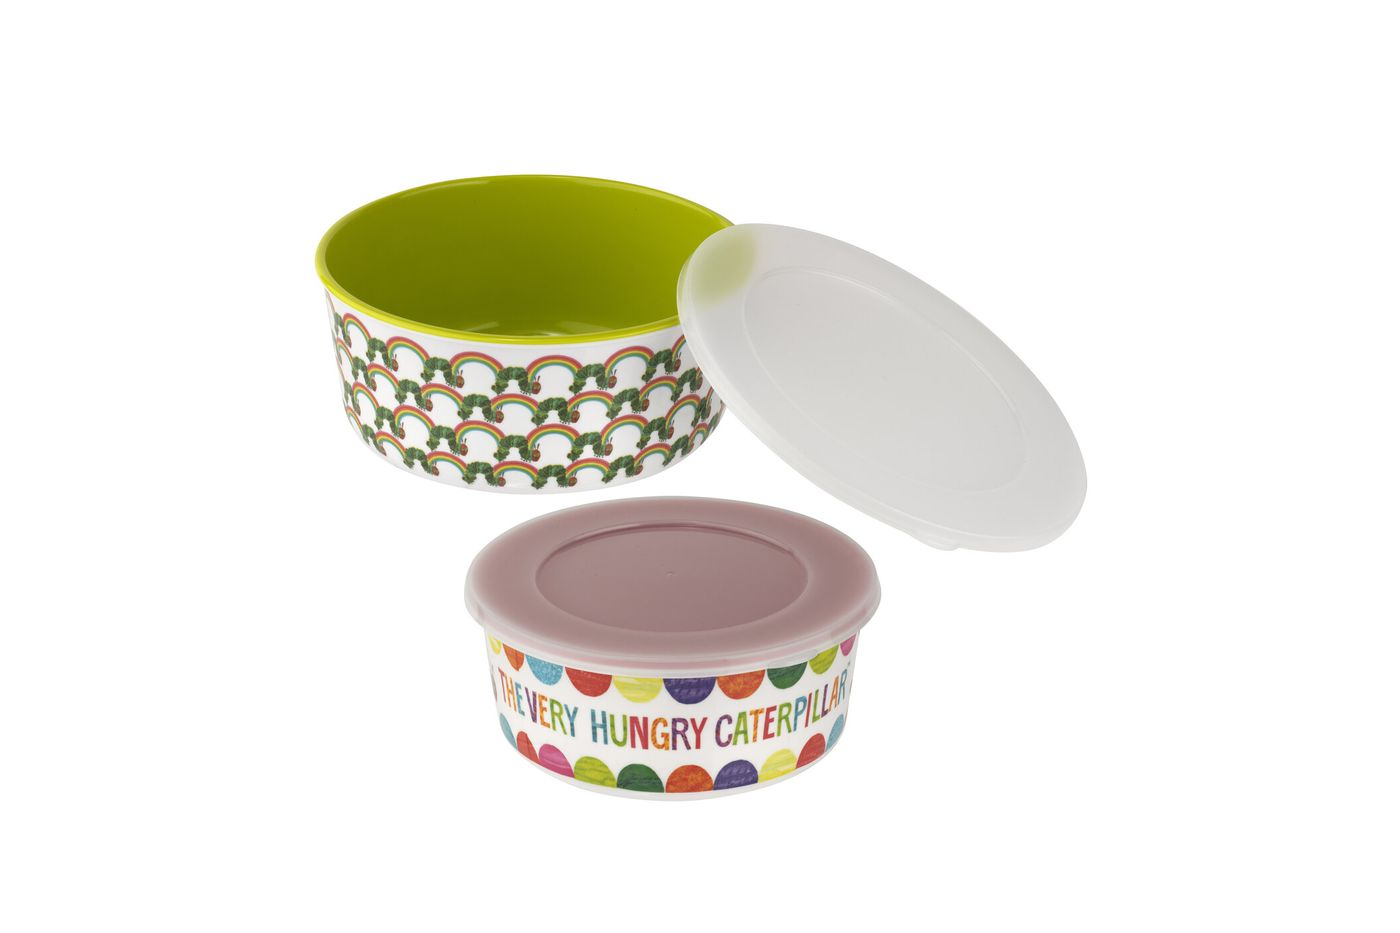 Portmeirion The Very Hungry Caterpillar by Eric Carle Melamine Storage Tubs Set of 2 thumb 1